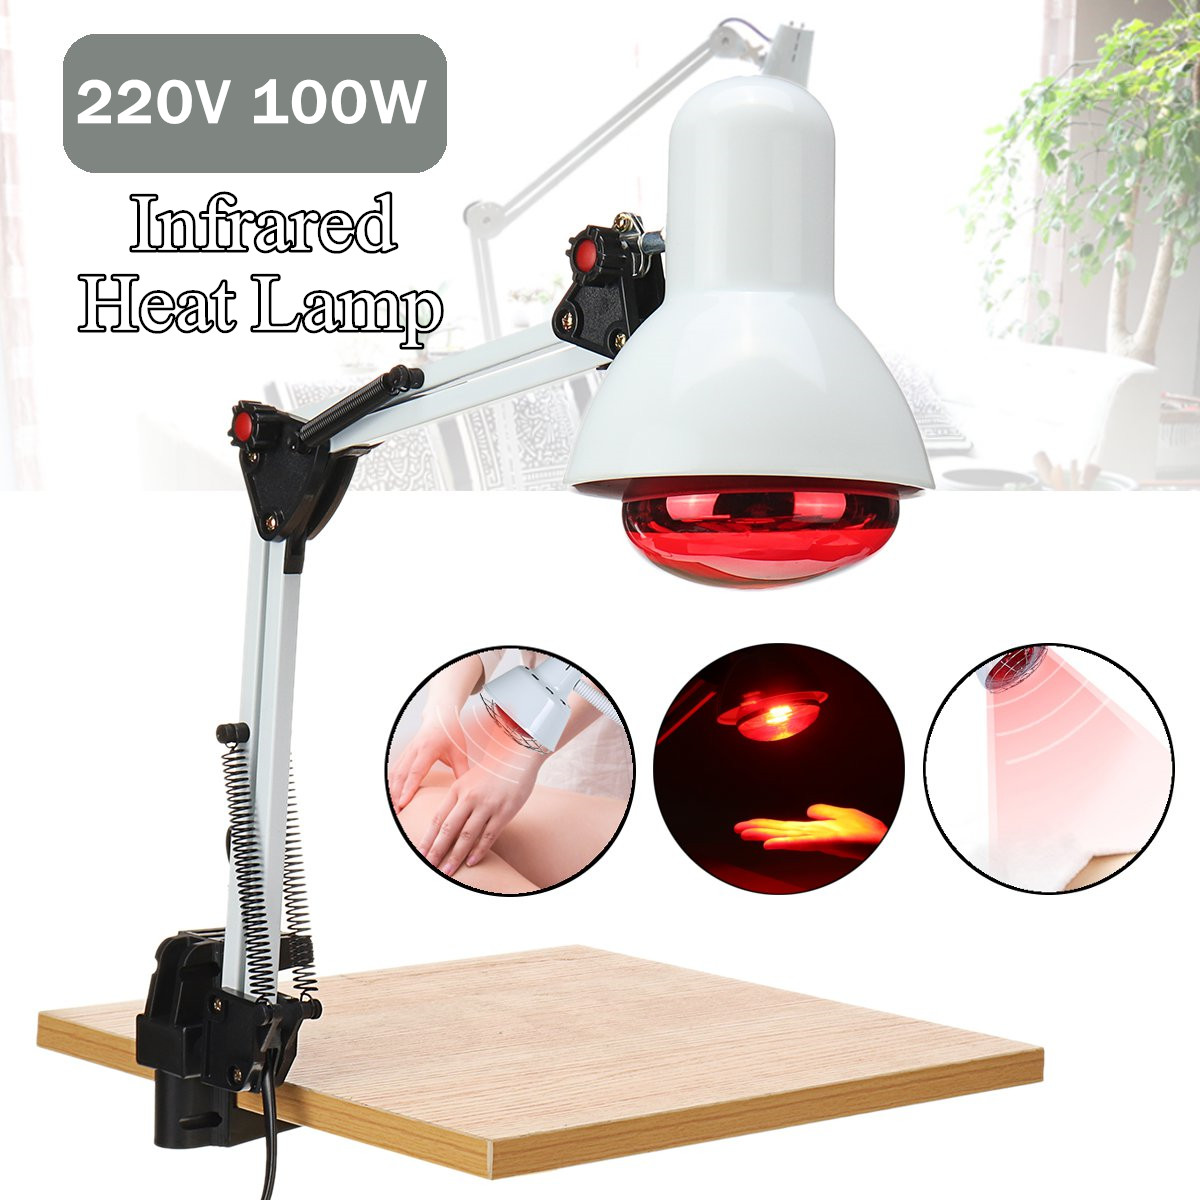 220V 100W E27 Infrared Physiotherapy Explosion-proof Lamp Heater  for Muscle Pain Cold Relief Light Therapy Infra Care Massage lampara infrarrojo peru